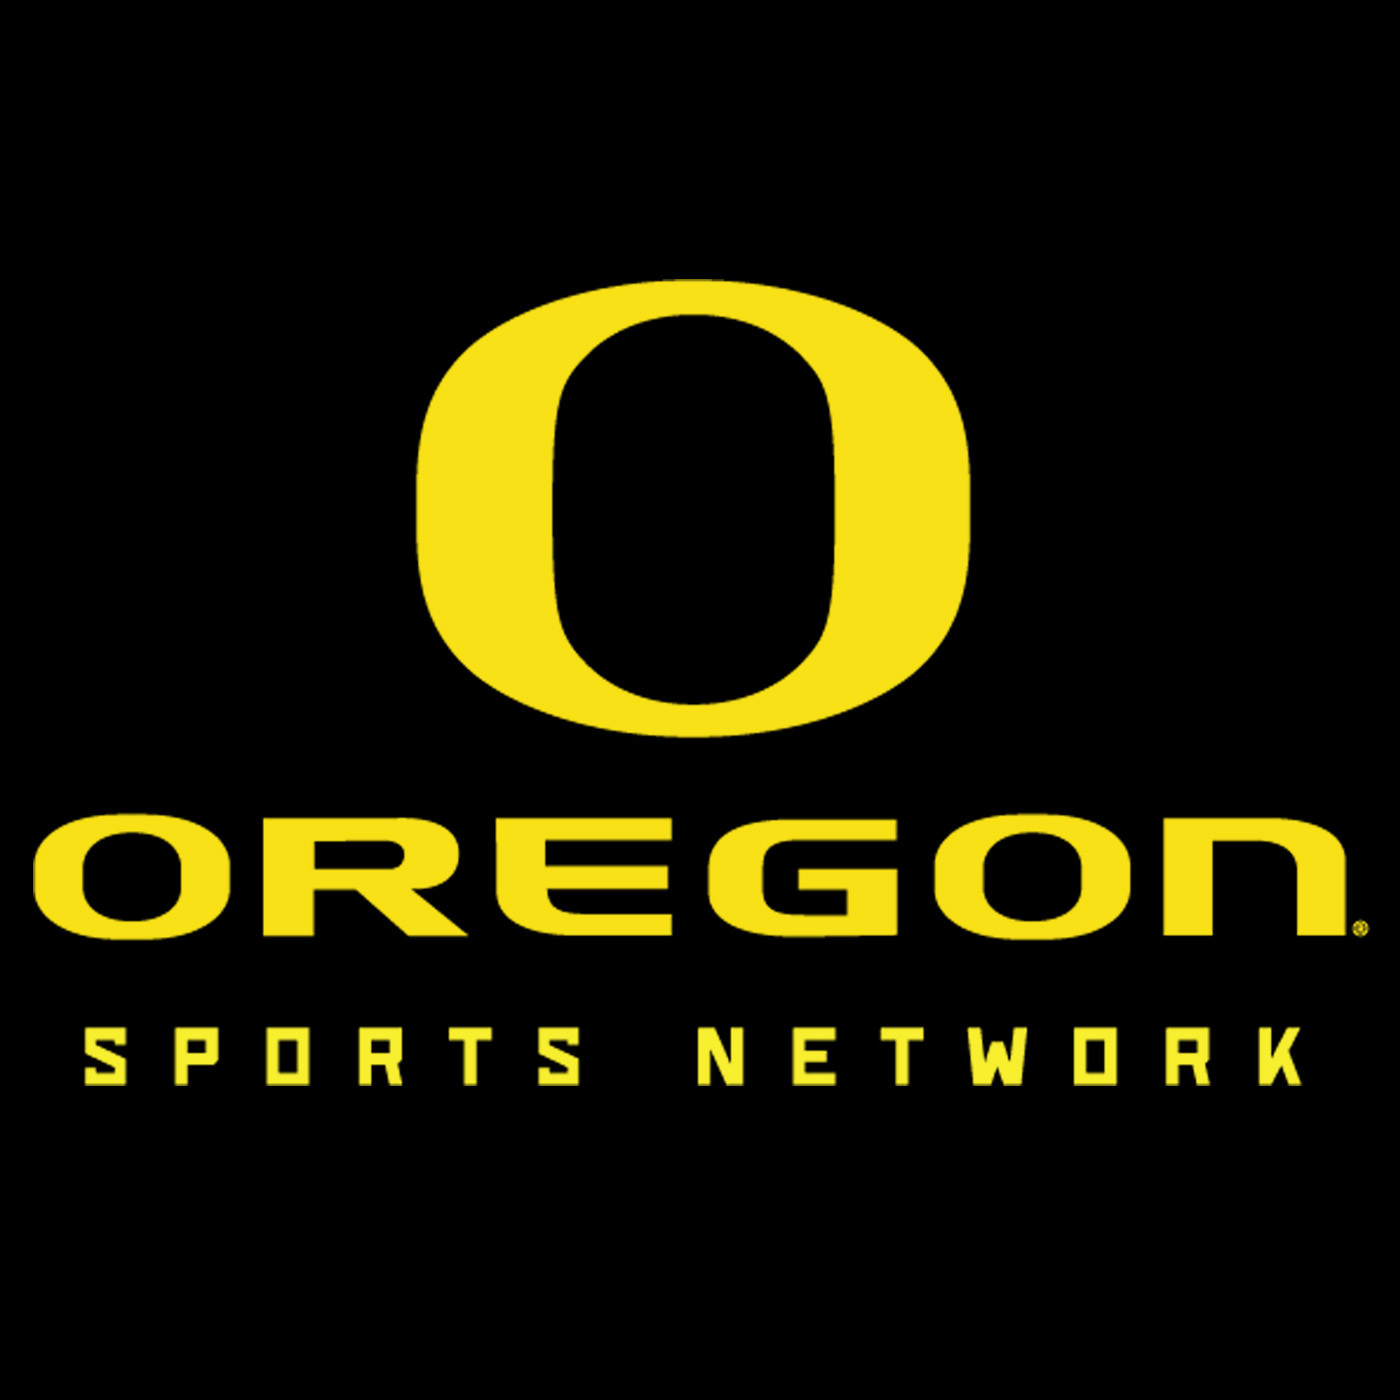 Oregon Sports Network